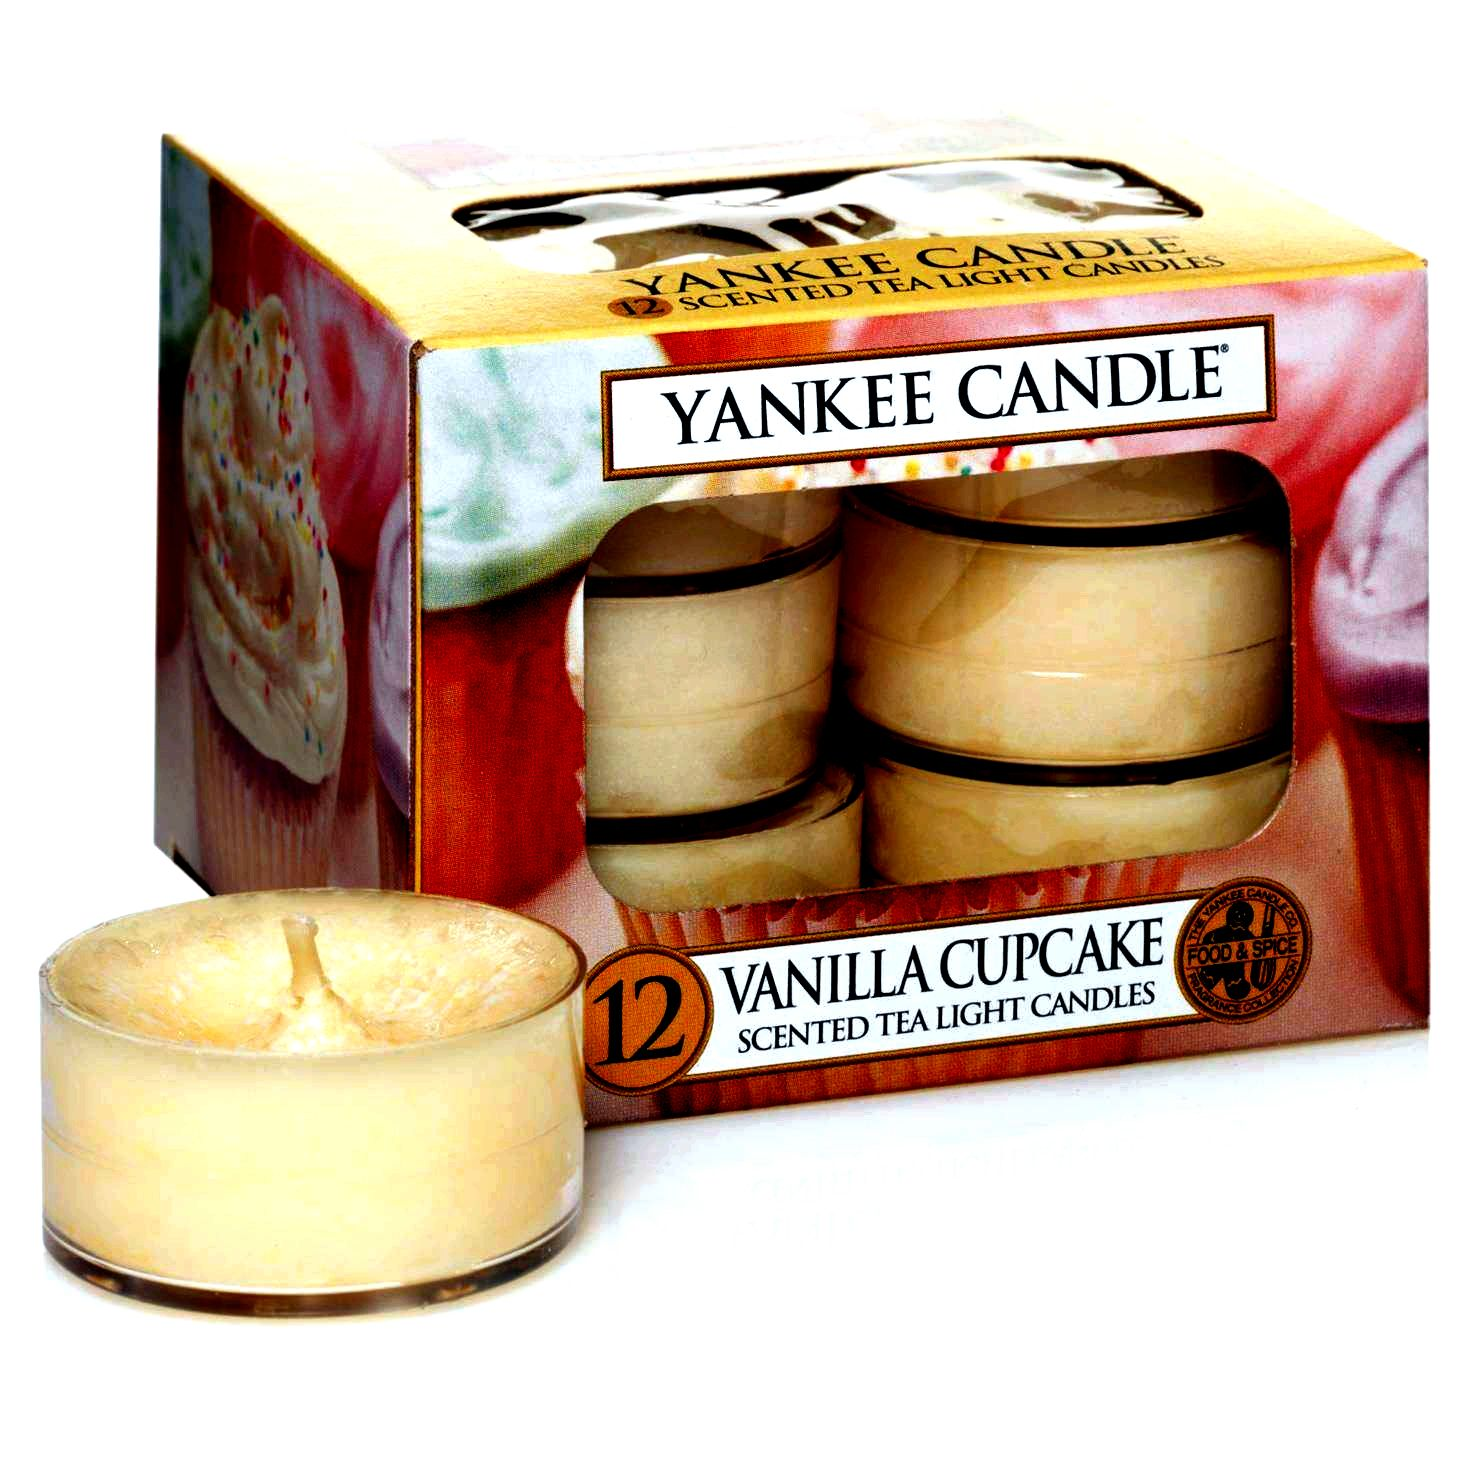 What sort of wax are yankee candle lights produced from? utilized in candle